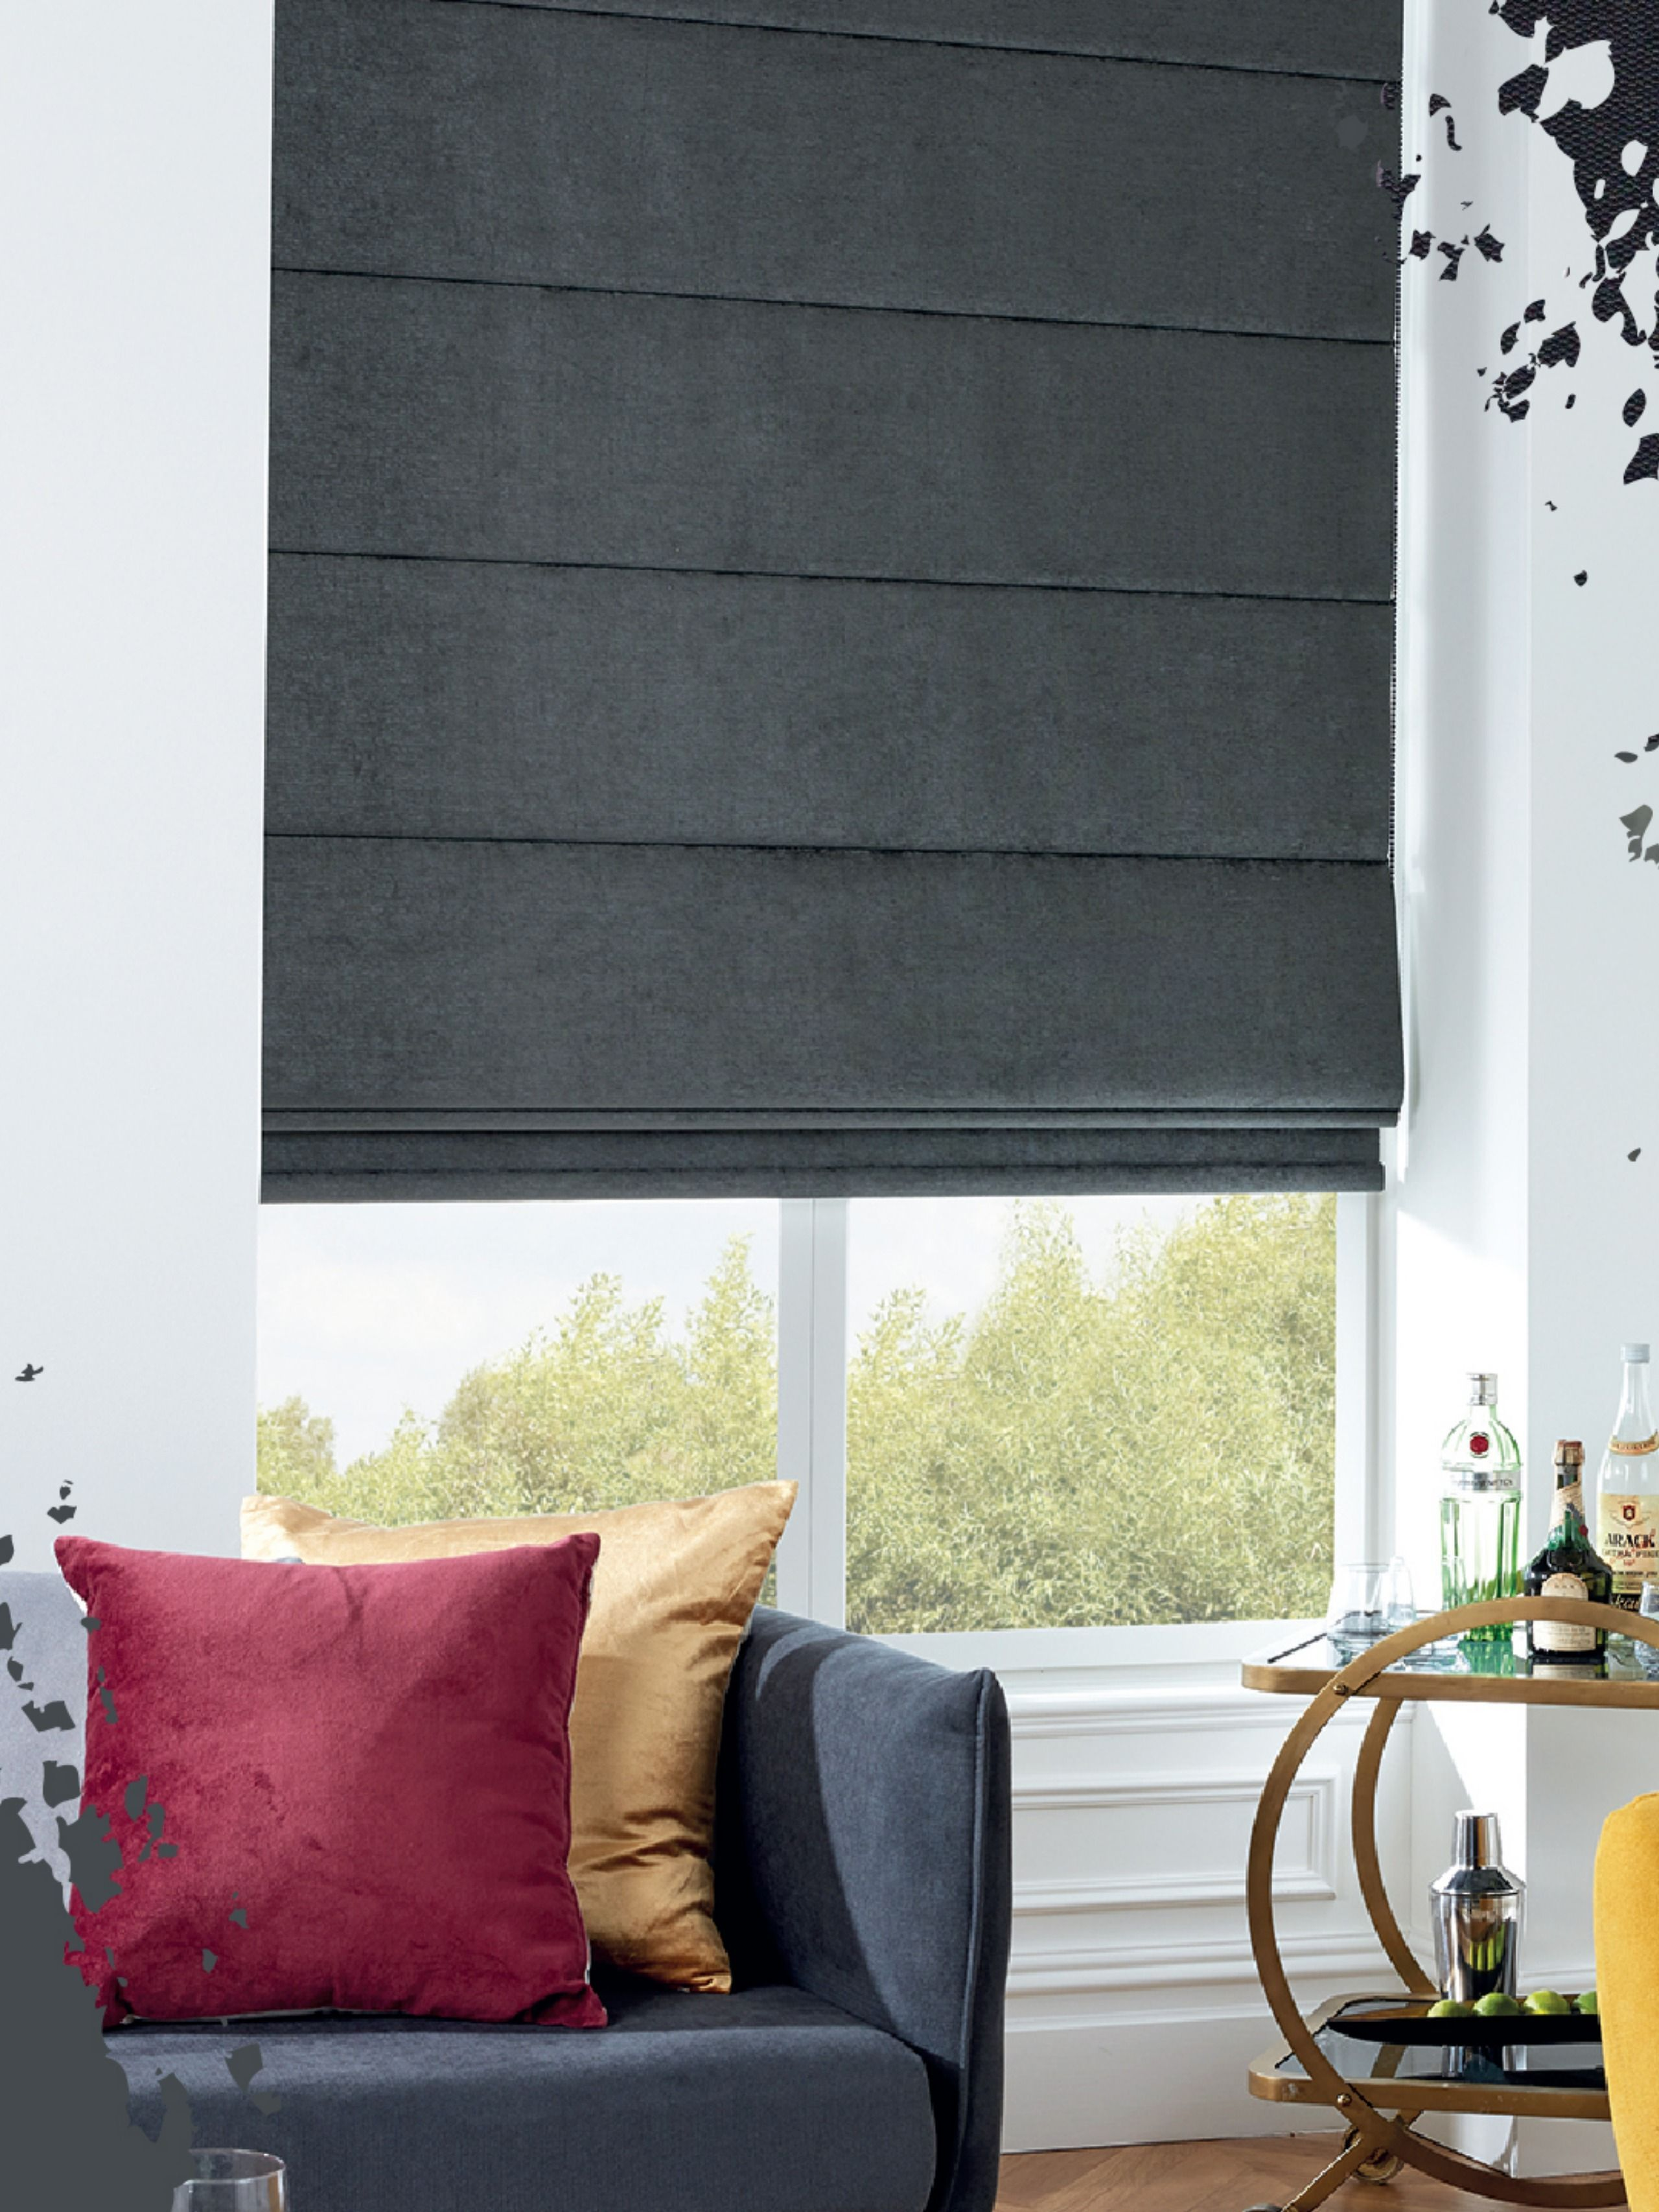 Terrific Pictures Roman Blinds Living Room Ideas Roman Blinds Are A Favorite Favourite Among Conscious Homeowners As They Provide A Stylish Stylish And Afforda #roman #blinds #living #room